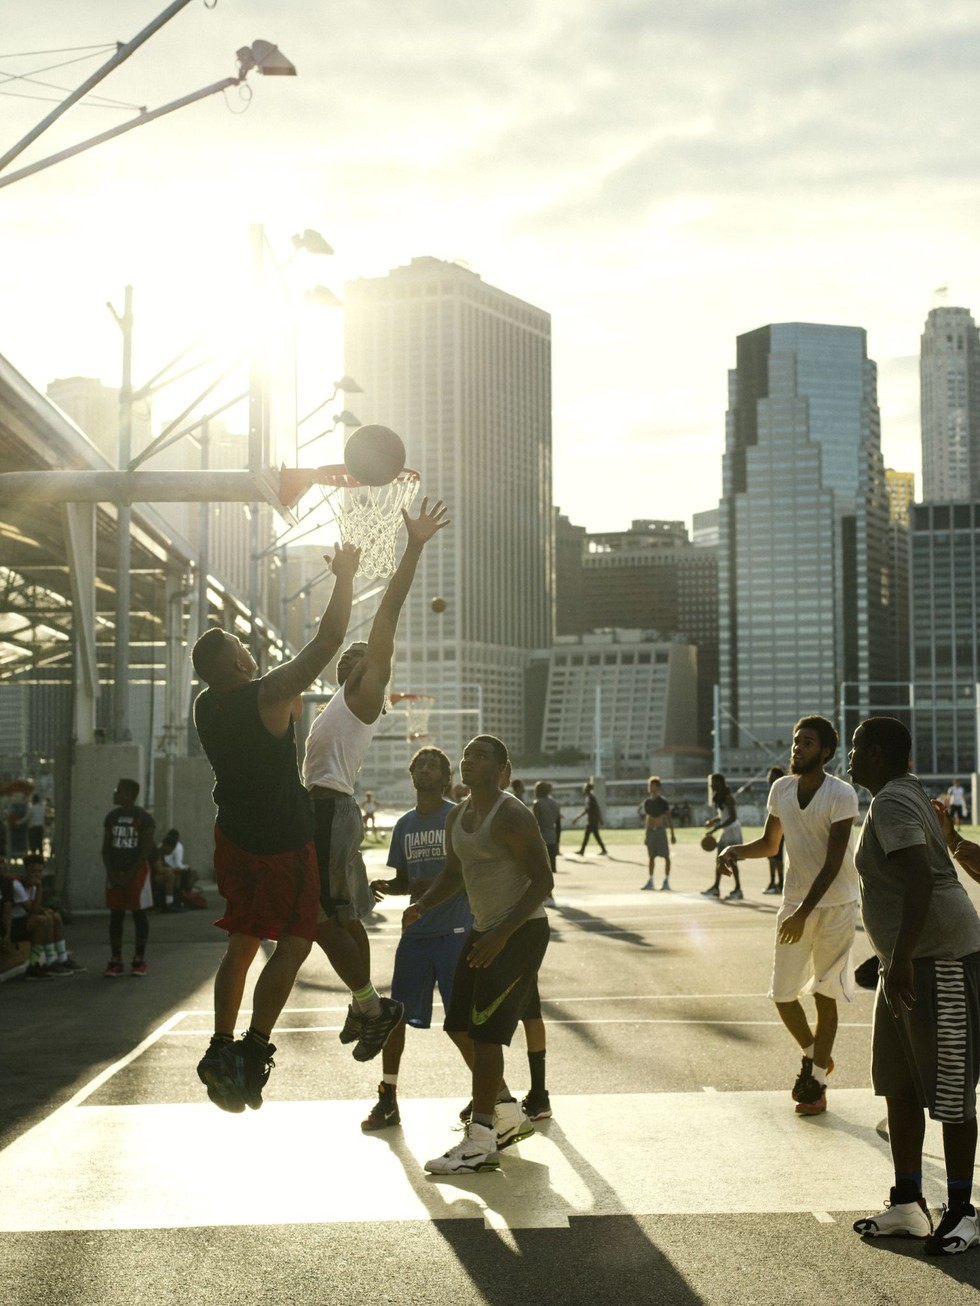 West 4th Street basketball courts, New York